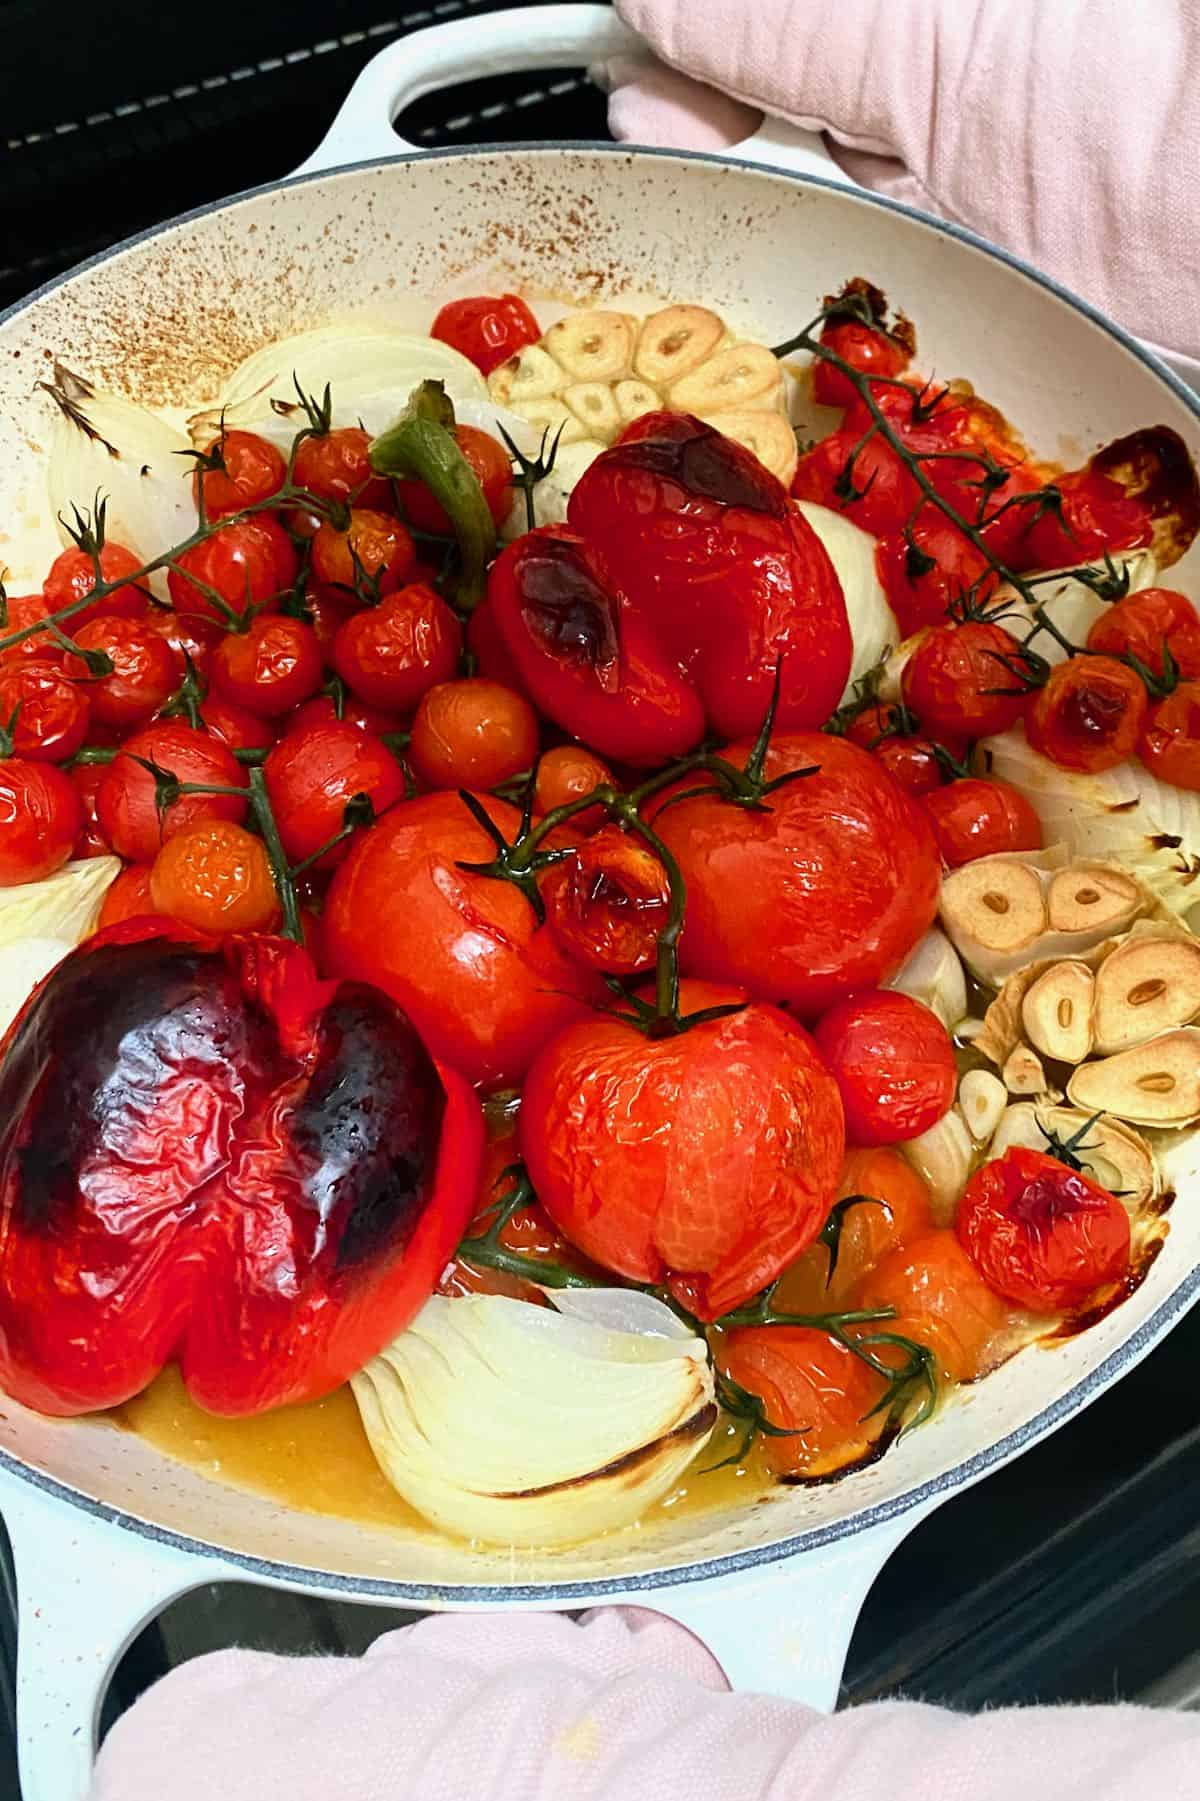 Toasted tomatoes and peppers in a large pan